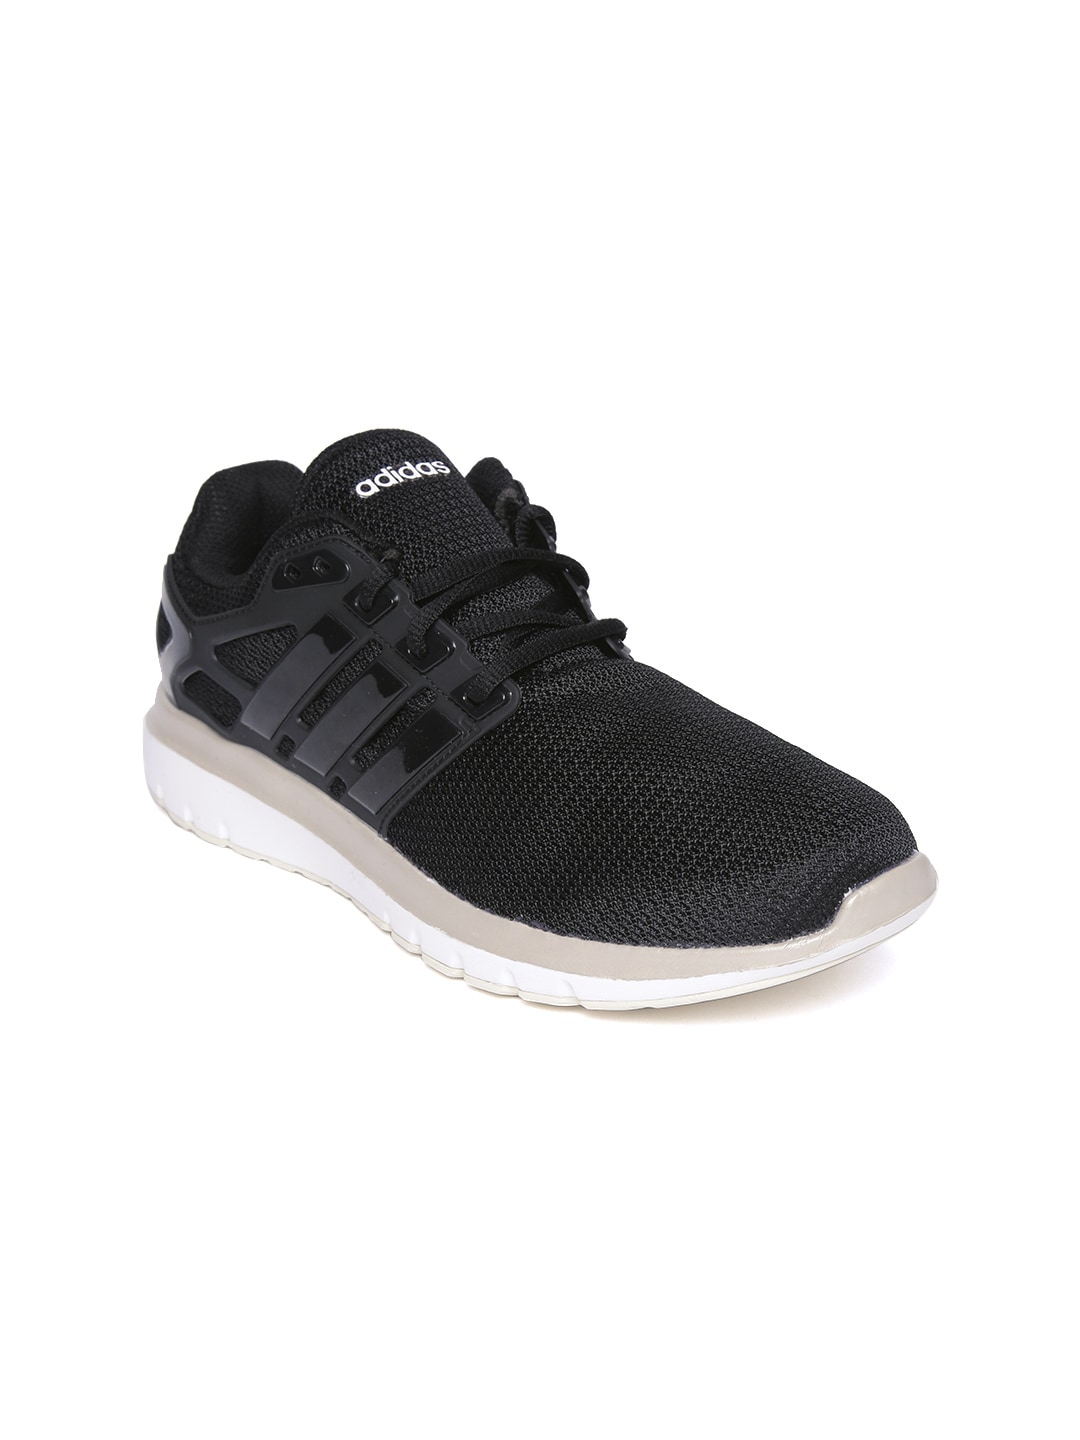 90328930fa3dc Women s Adidas Shoes - Buy Adidas Shoes for Women Online in India